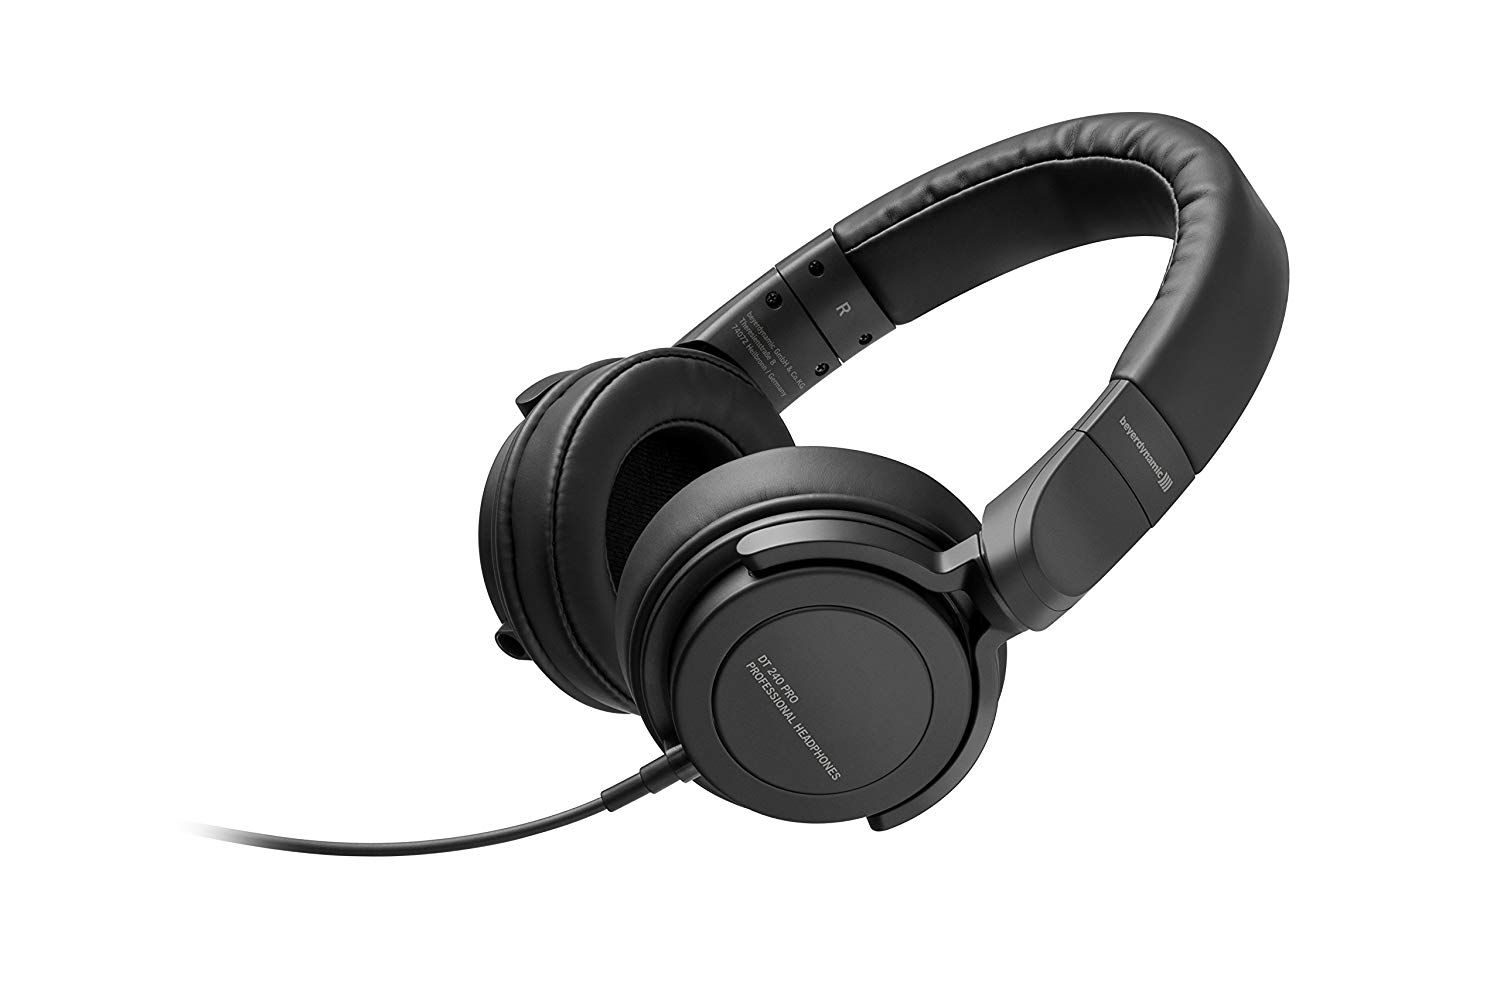 Image result for Best headphone 2020images